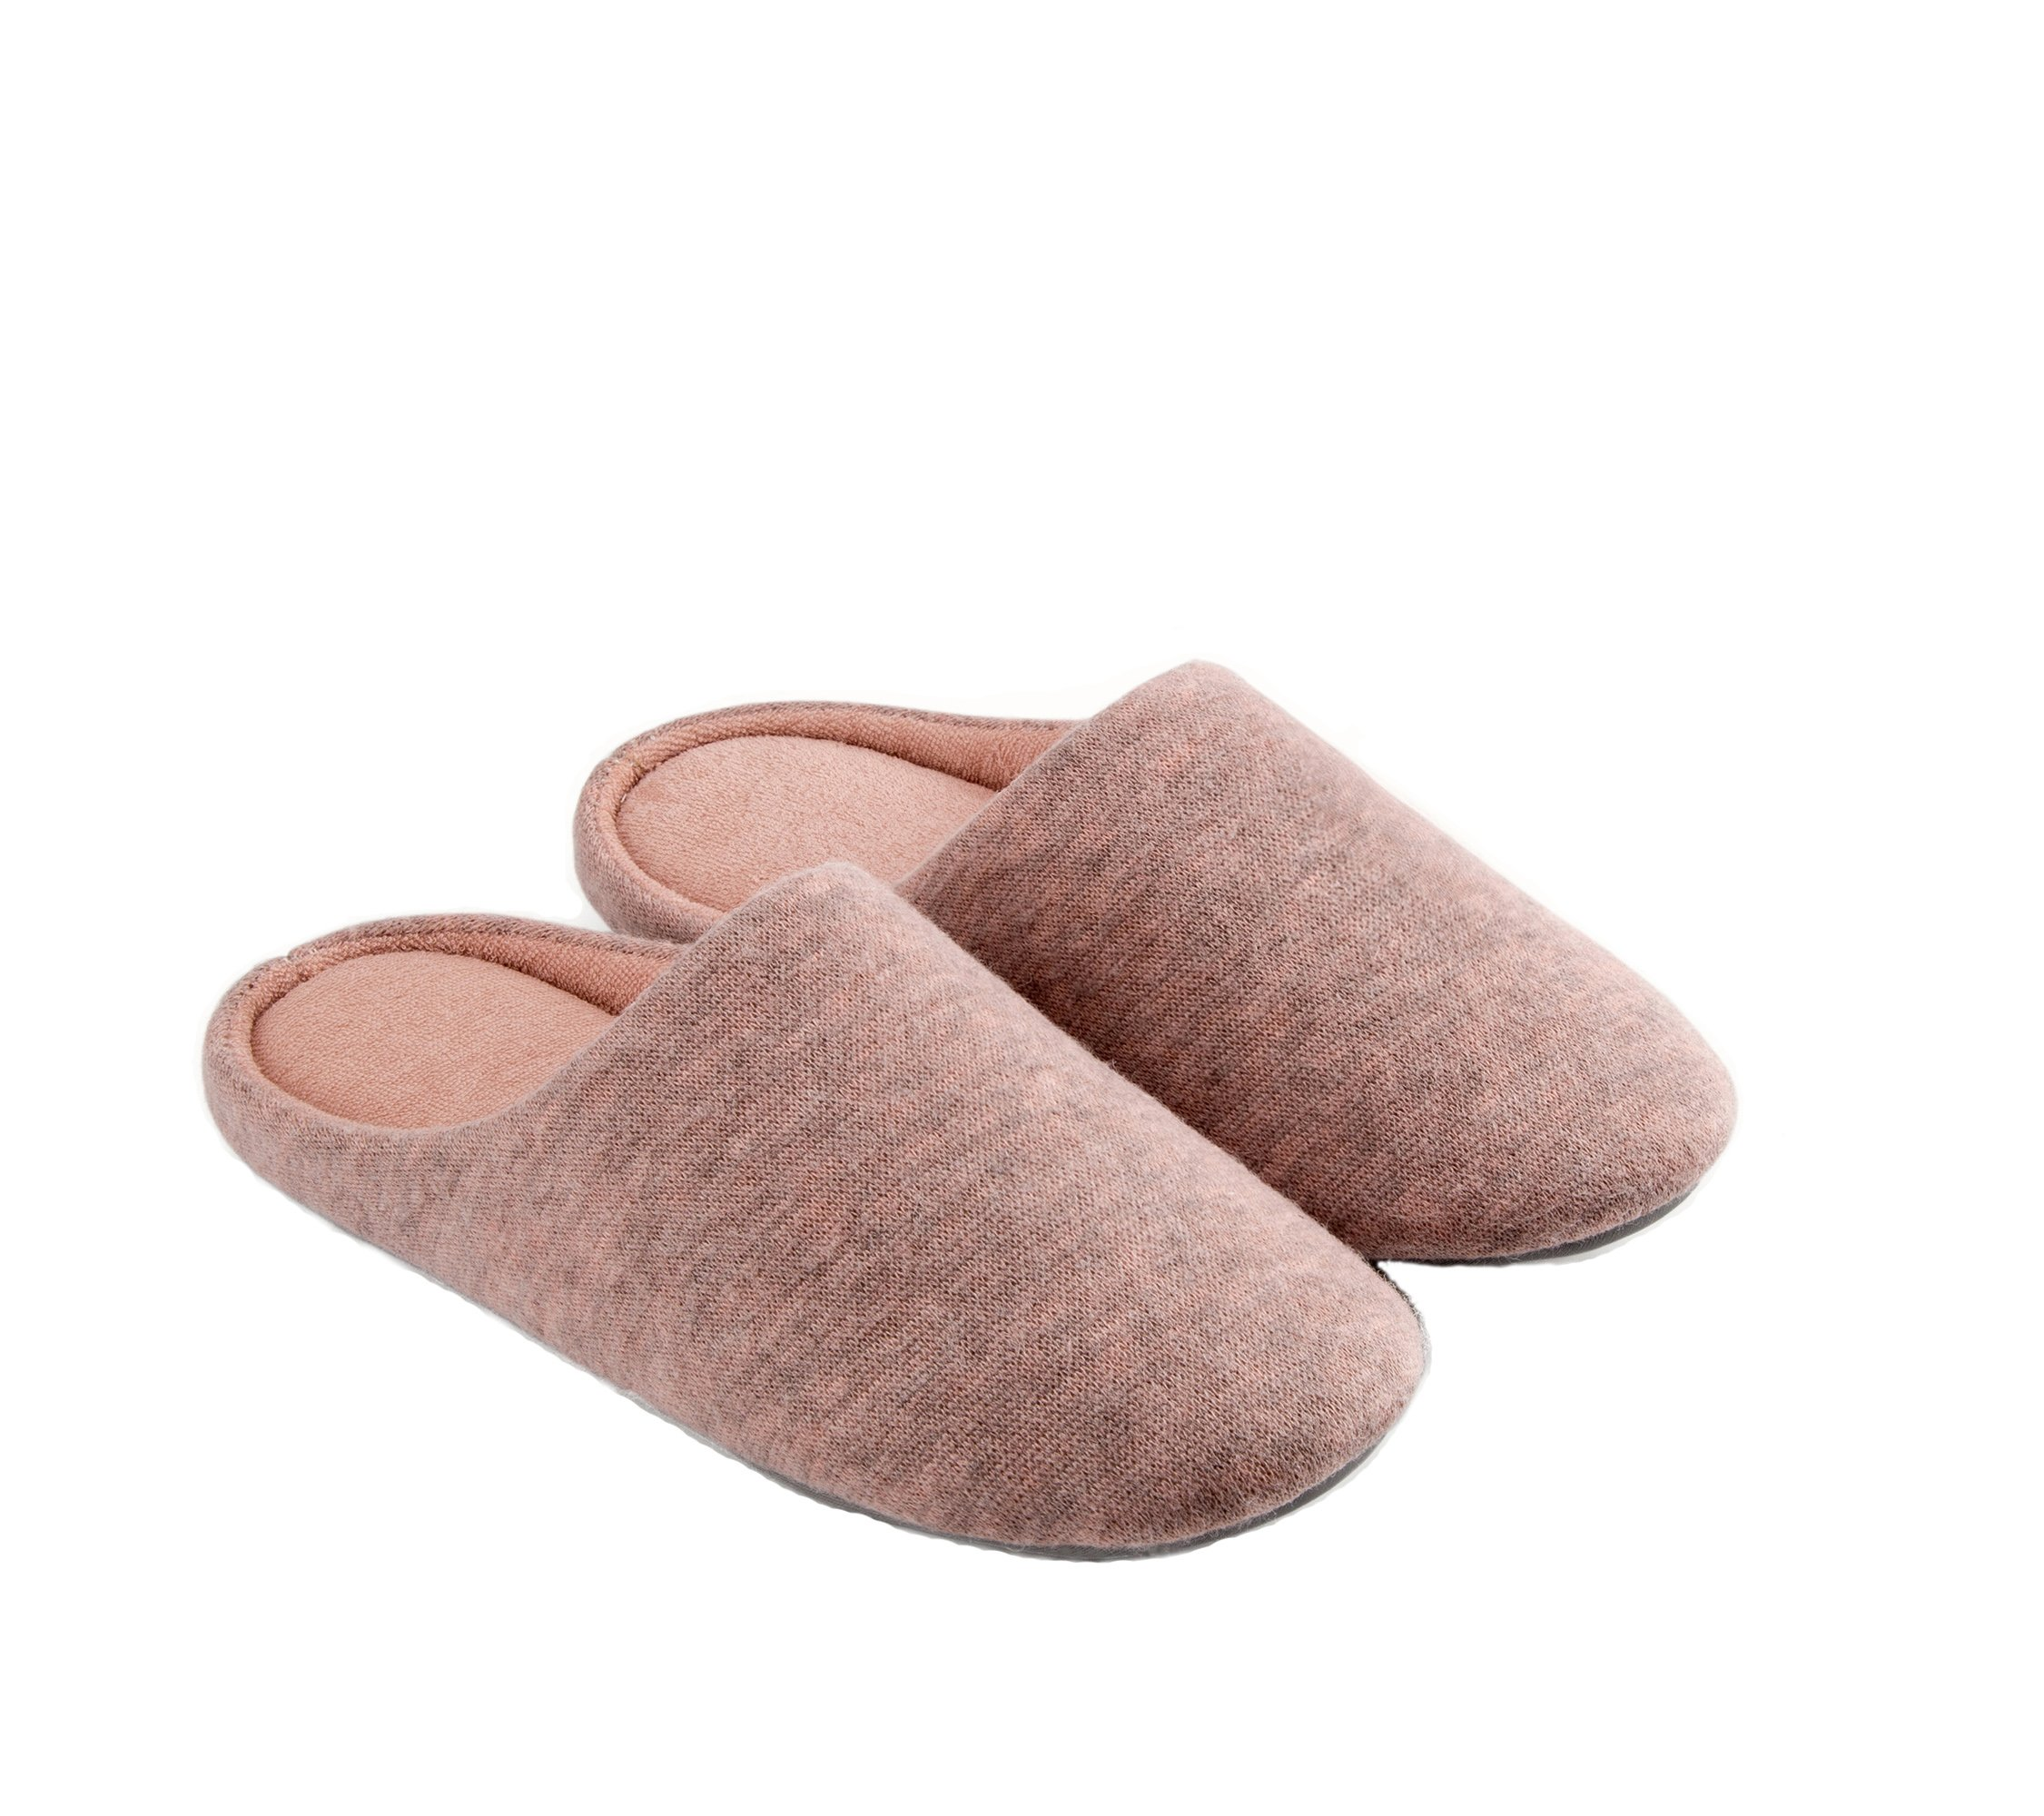 afce728f4 Buy YanYeeh Slippers for Women Womens Slippers Pink Slippers House Slippers  Bedroom Indoor Outdoor Arch Support Slipper Slippers Y1 in Cheap Price on  ...